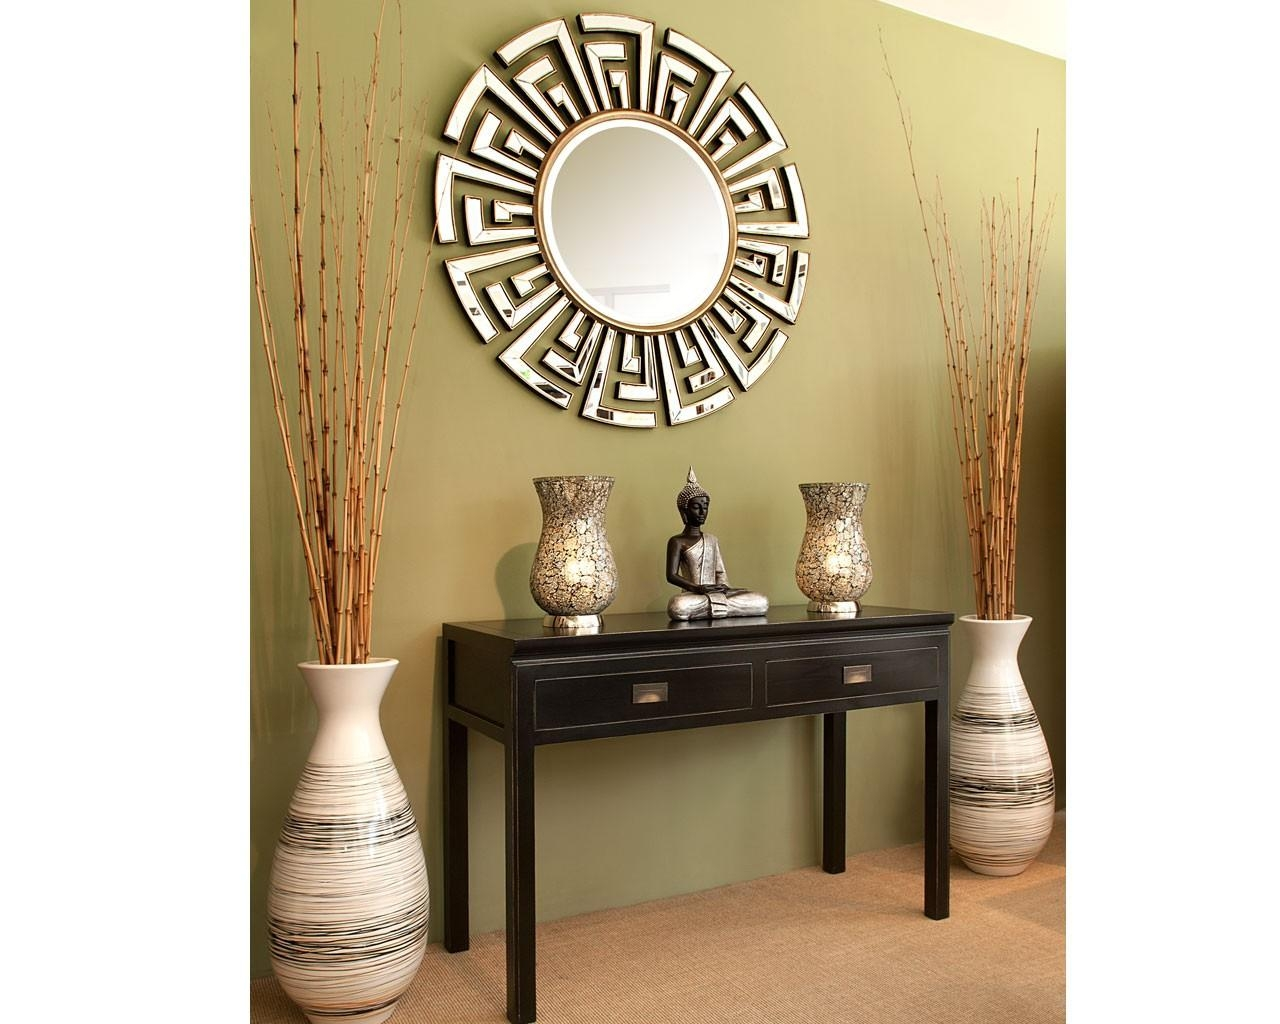 Contemporary Art Deco Round Mirror | Statement Circular Mirrors With Regard To Wall Art Mirrors Contemporary (Image 4 of 20)